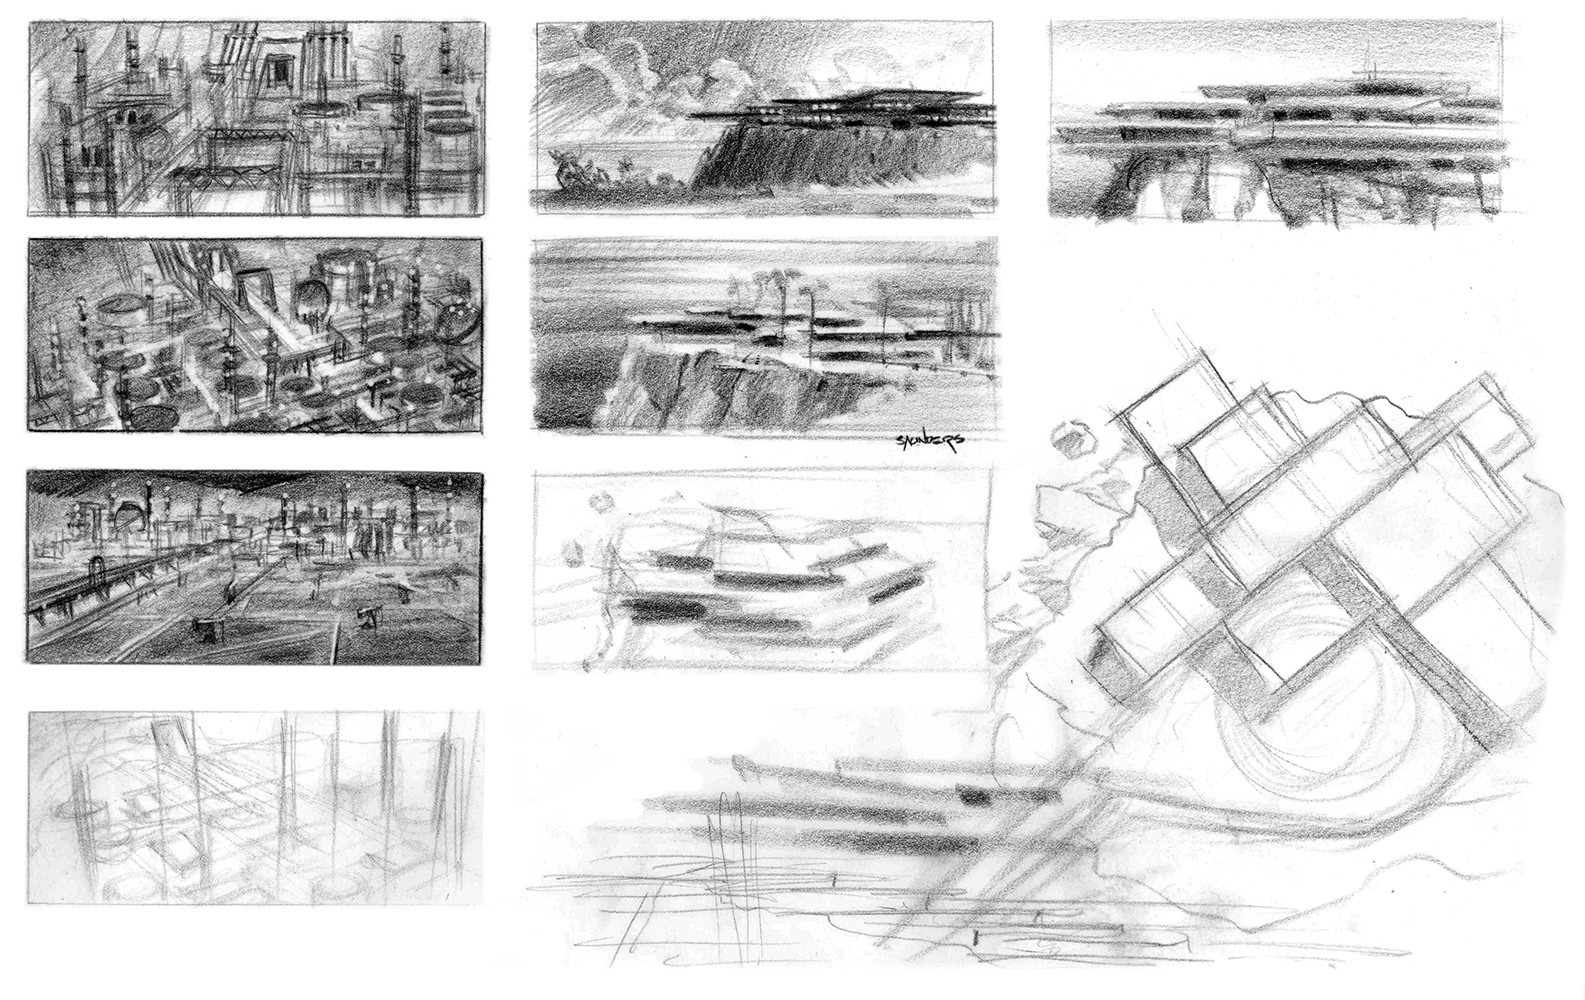 More layout sketches of the house, establishing mood and feel. Note also sketches for the Khan refinery assault scene that was ultimately cut from the climax of the movie.